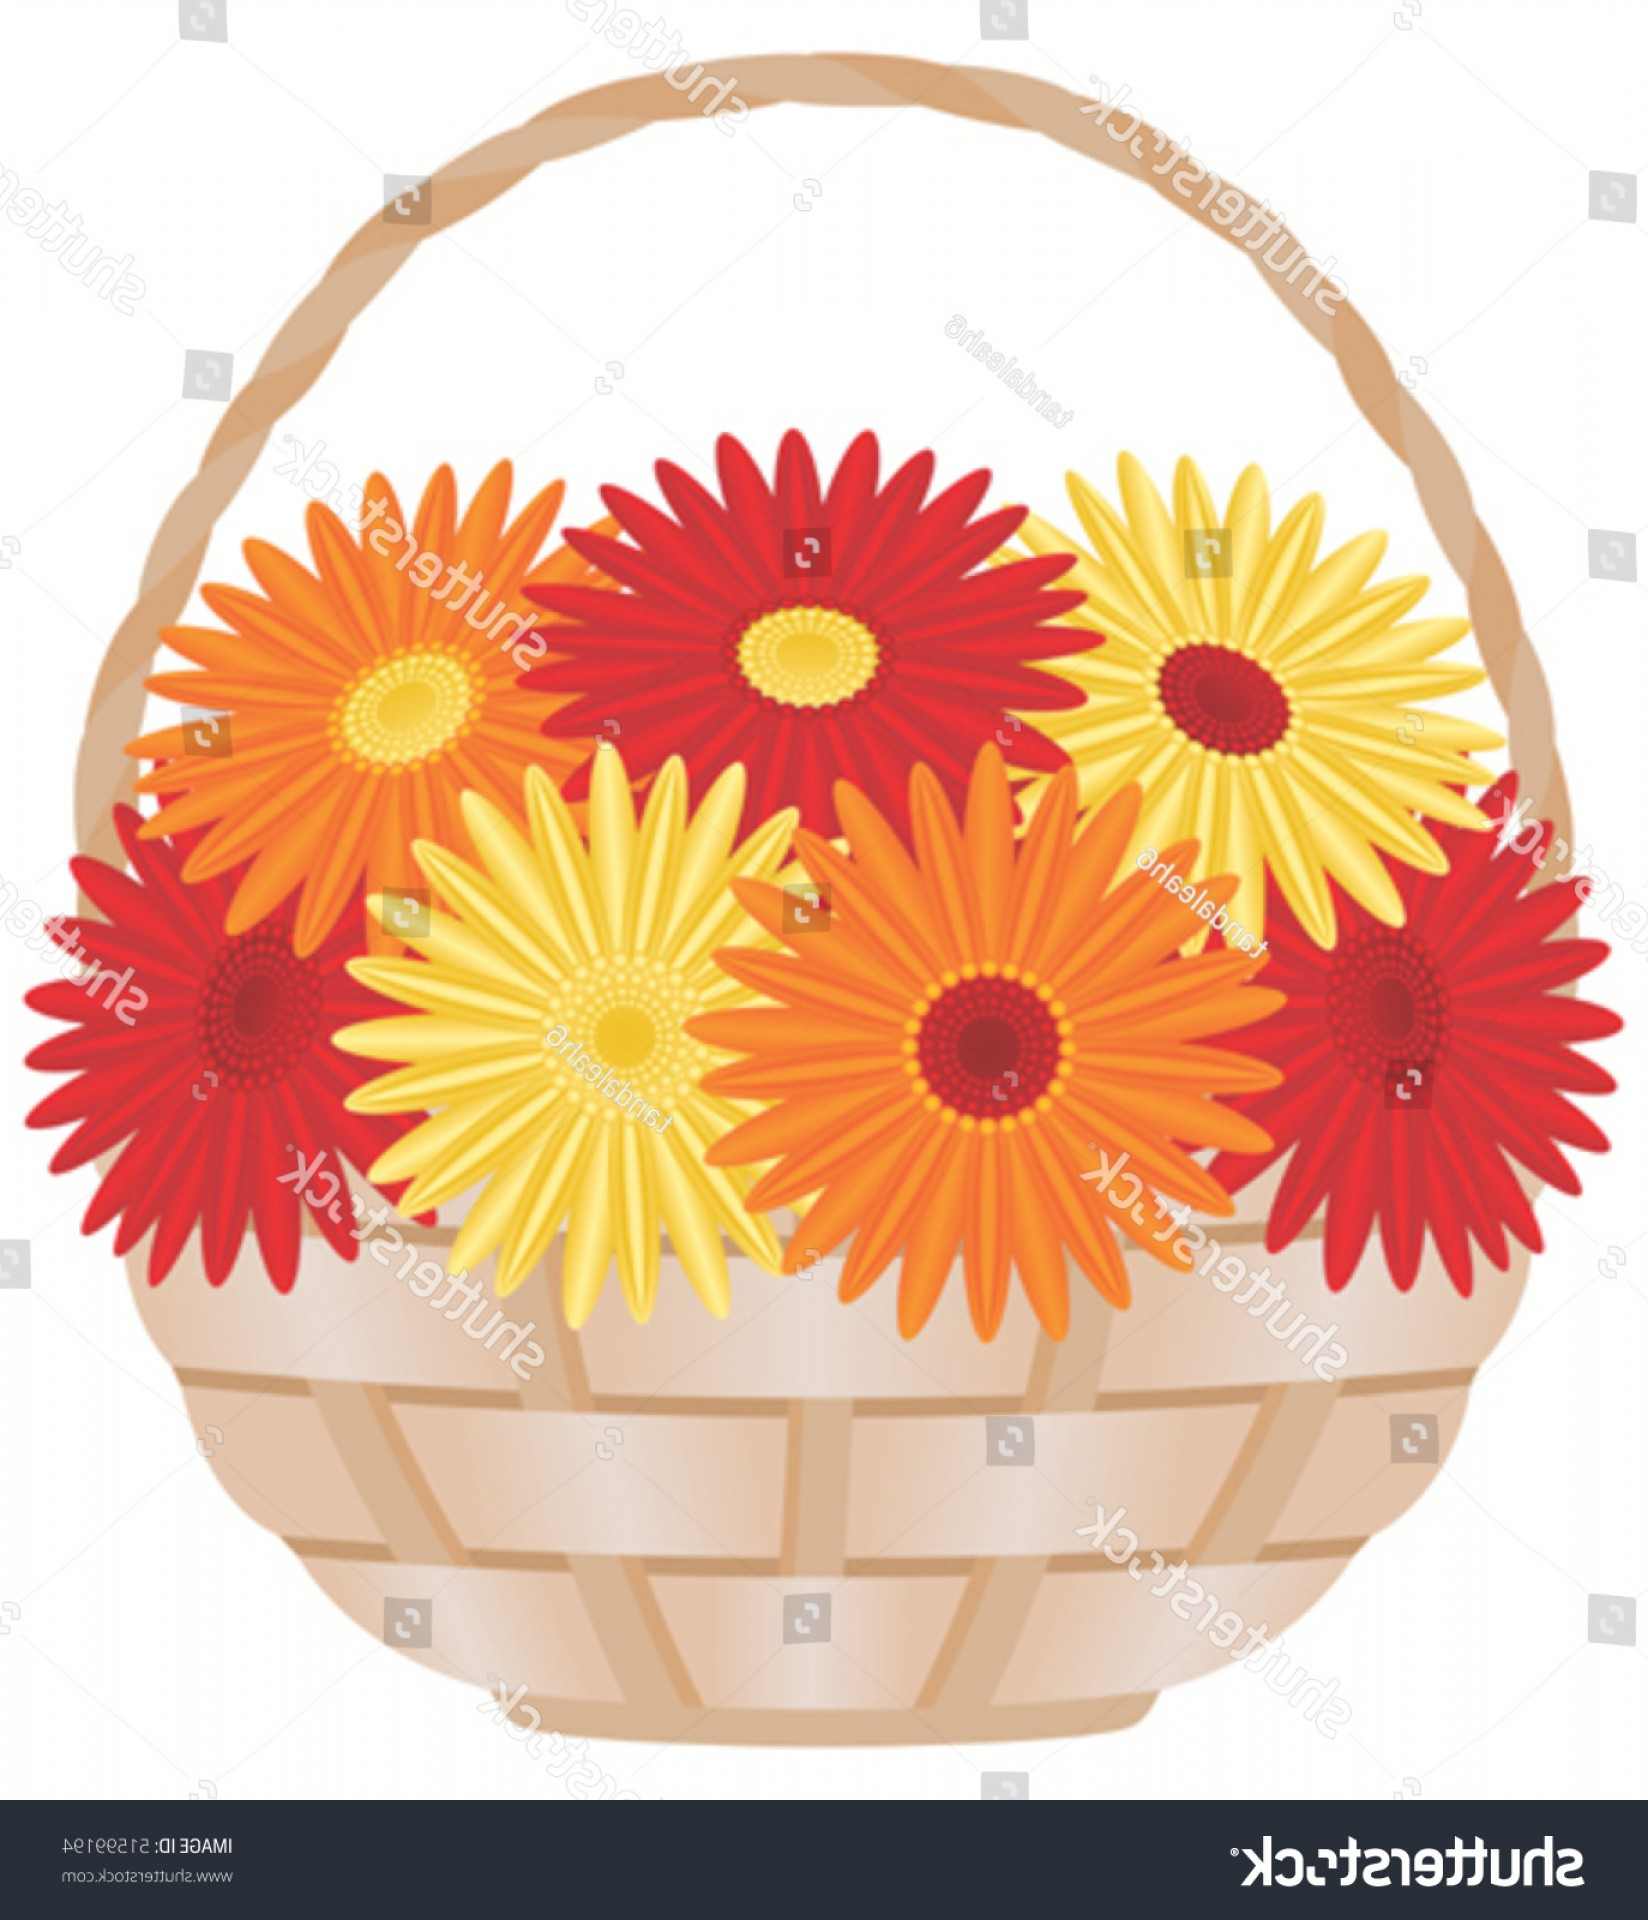 Orange Gerber Daisy Vector: Catchy Gerber Daisies Basket Vector